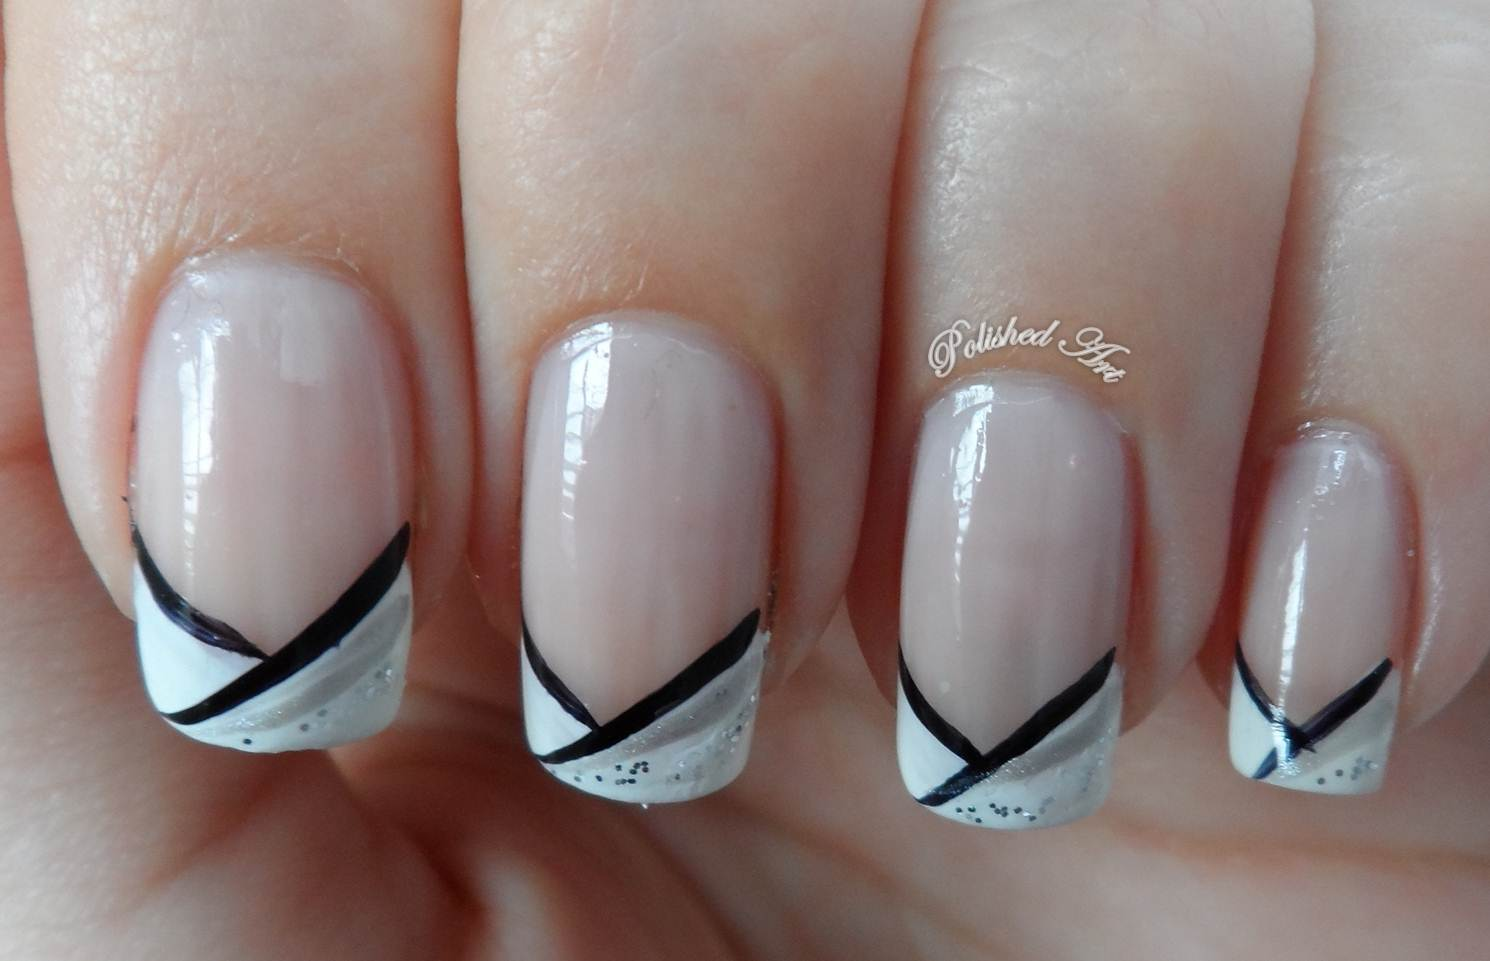 Polished art french tips french tips prinsesfo Choice Image